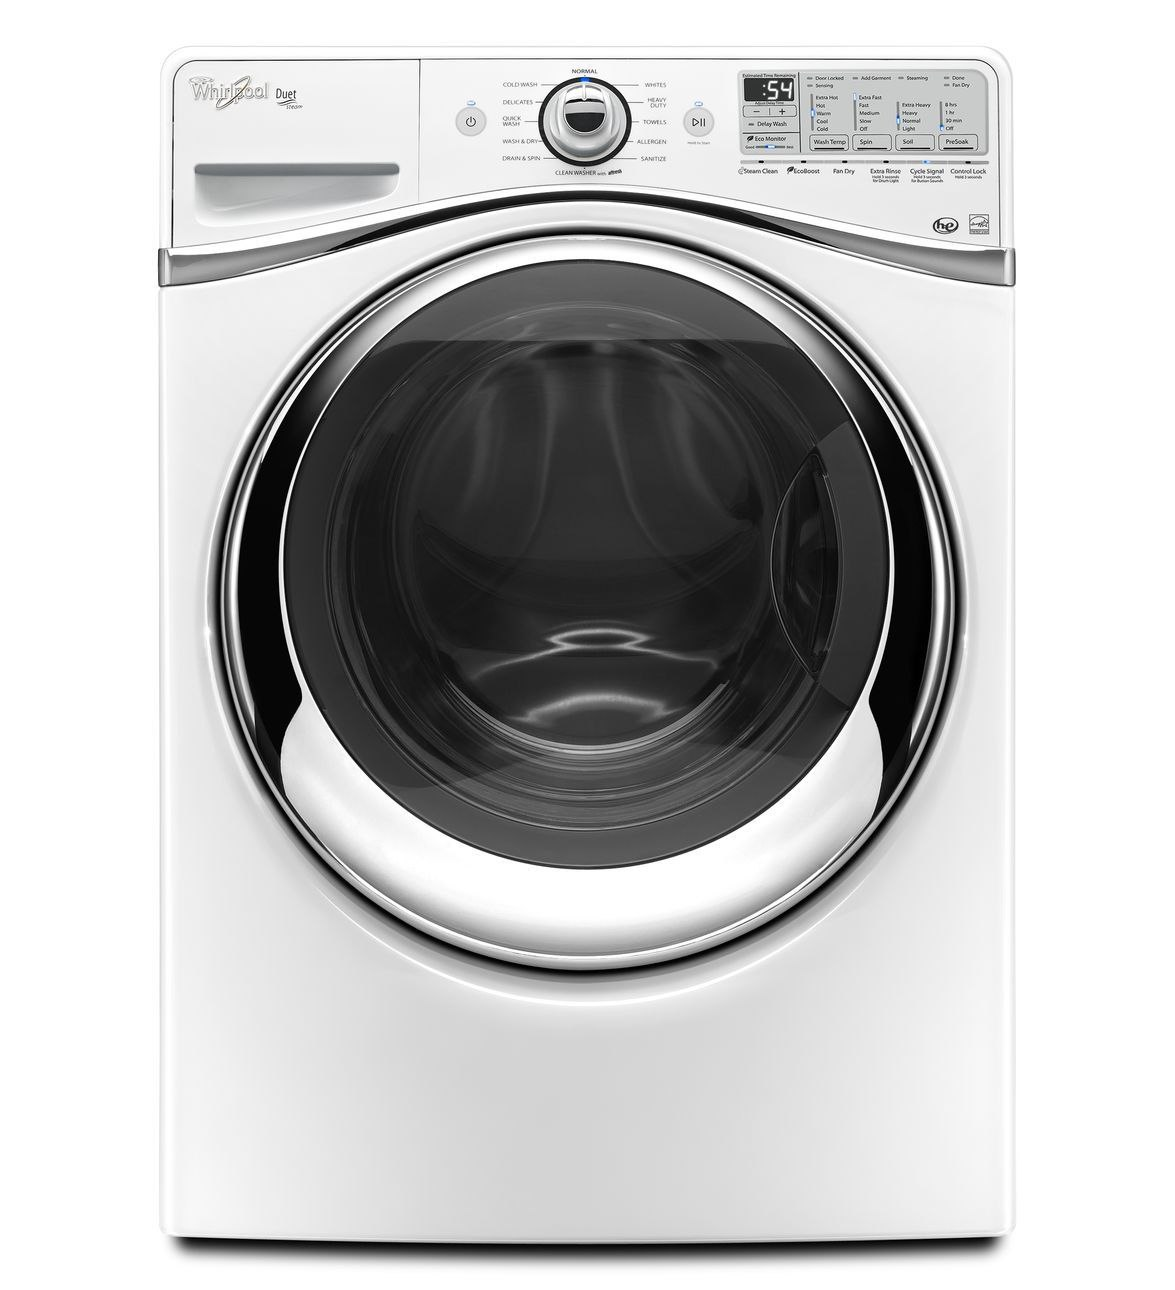 Whirpool WFW94HEAW Front Load Washer.jpg